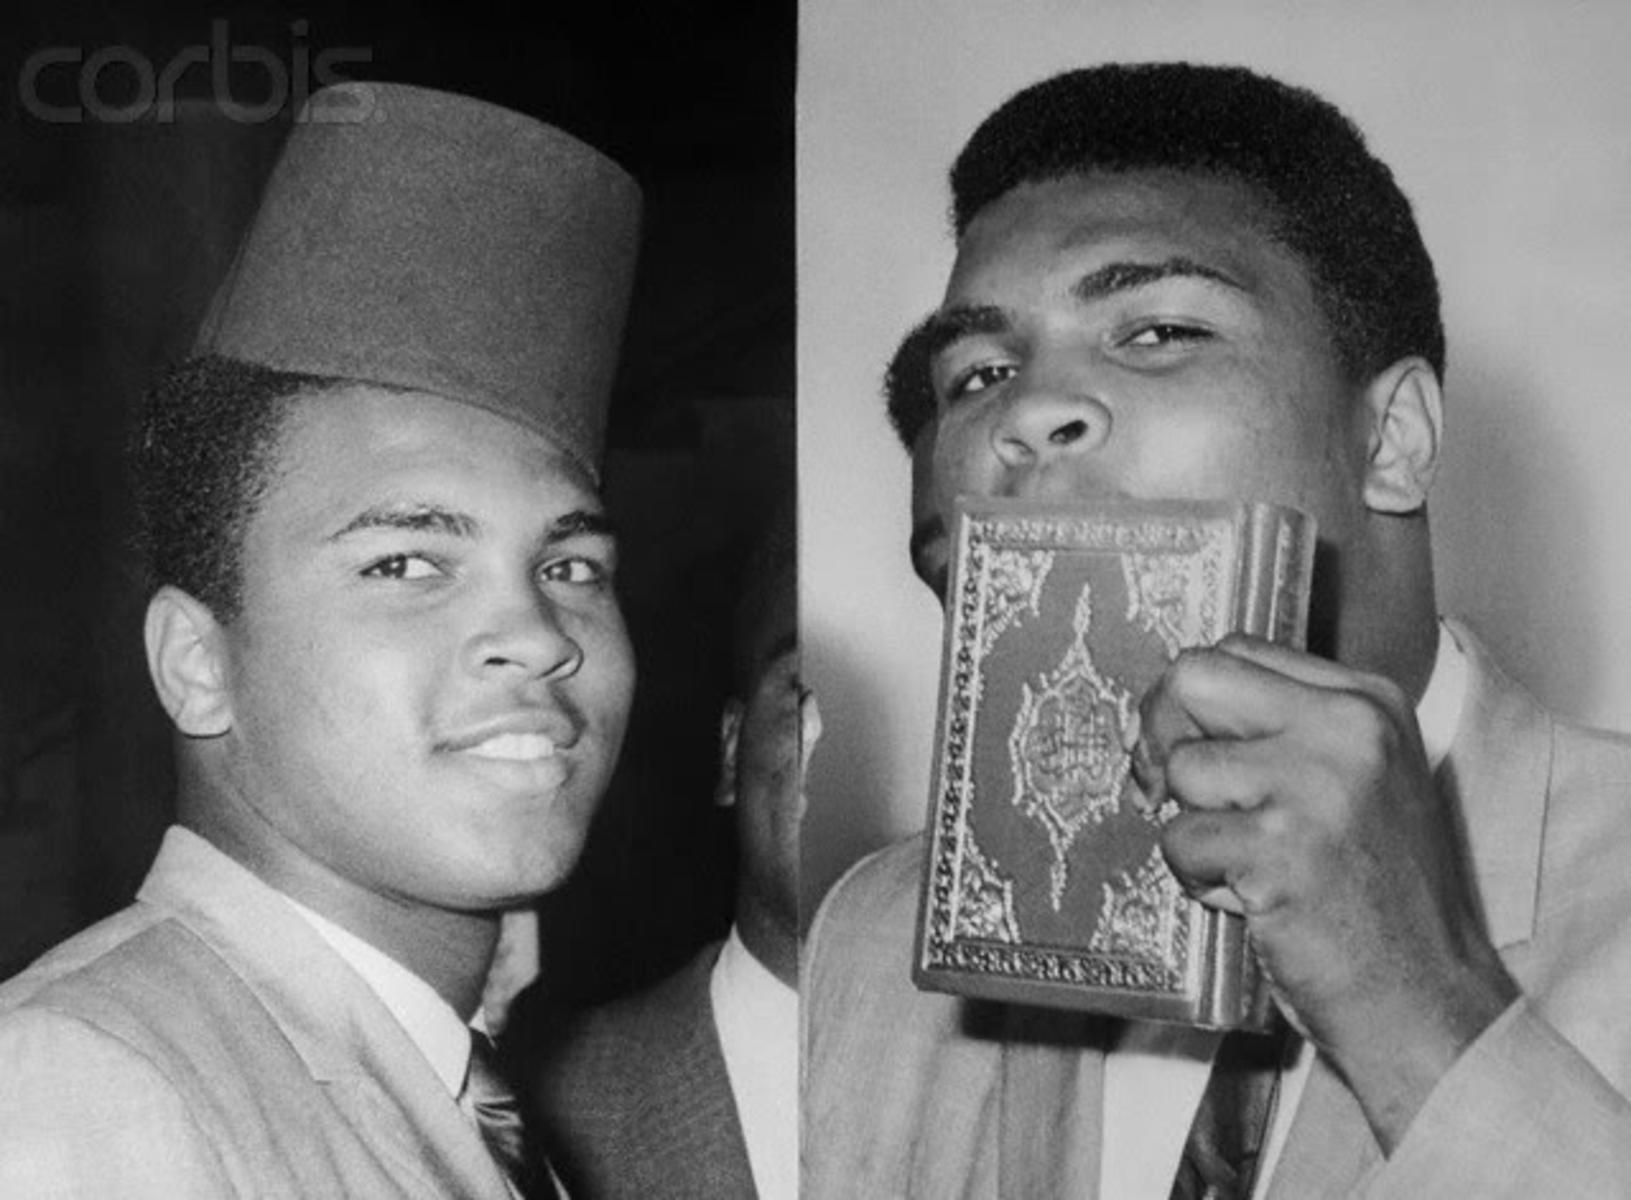 Quand mohamed ali clay a t pers cut cause de son islam - Geloof hars ...